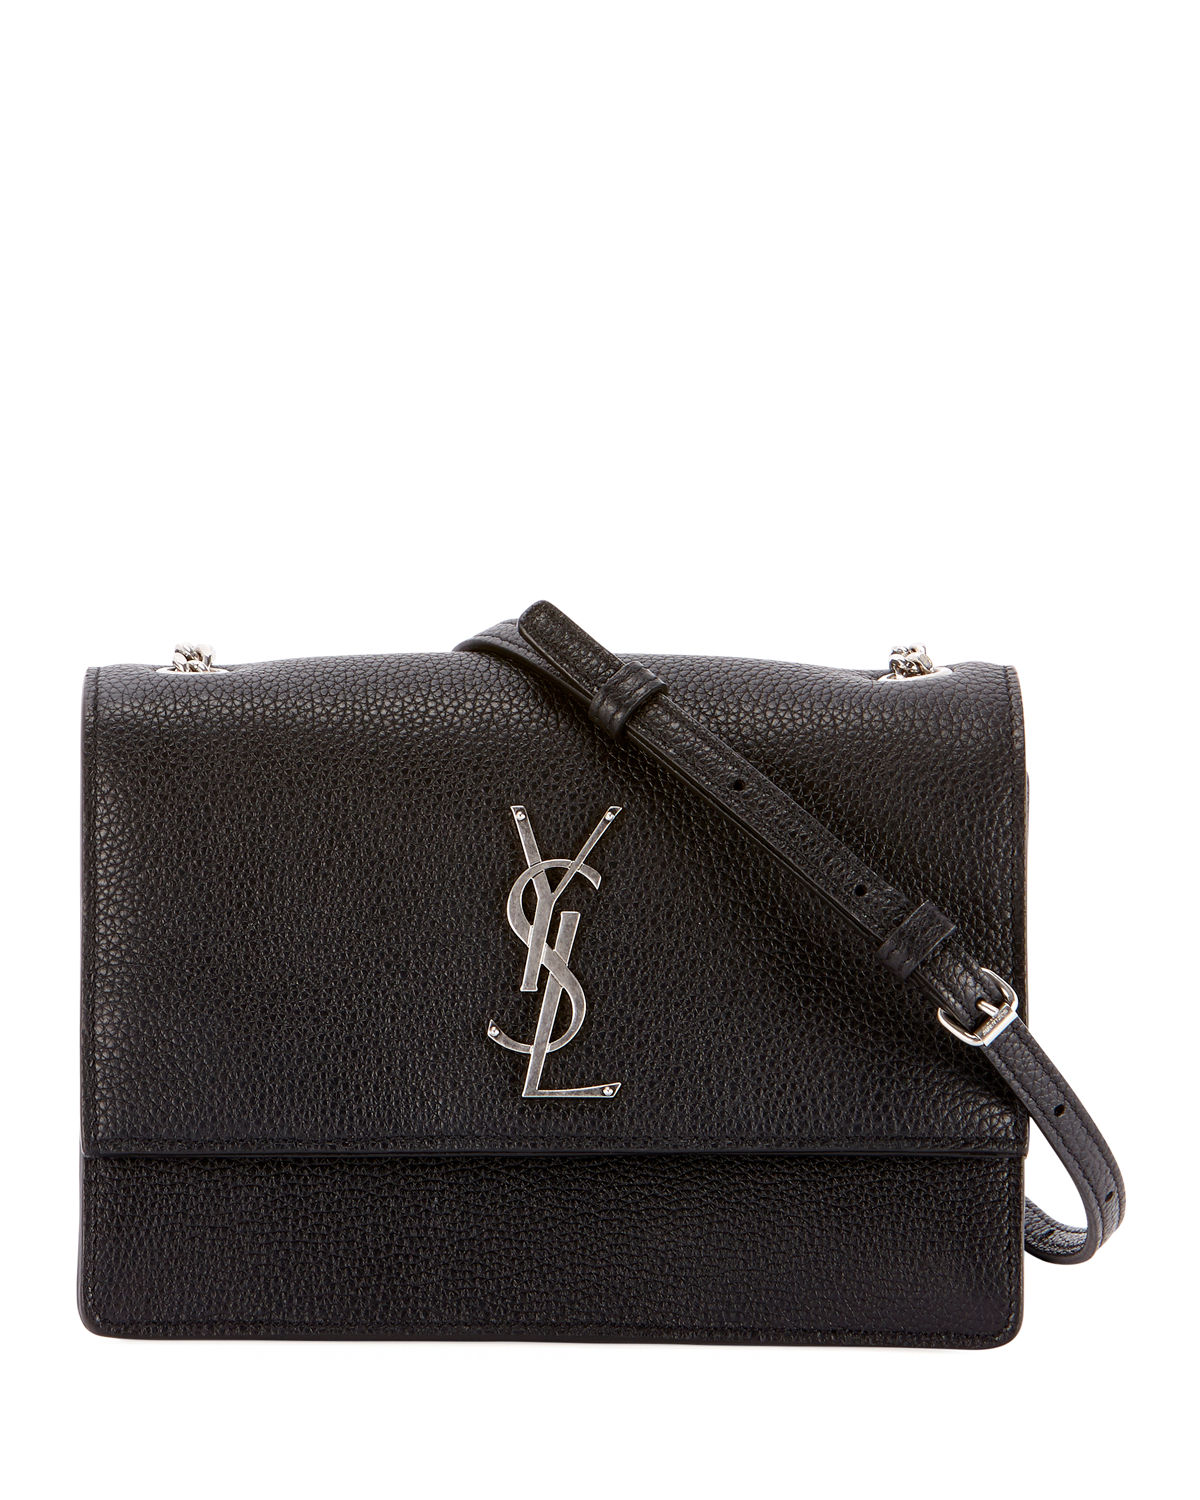 e544466988 Saint LaurentMonogram YSL Sunset Small Chain Pebbled Leather Shoulder Bag